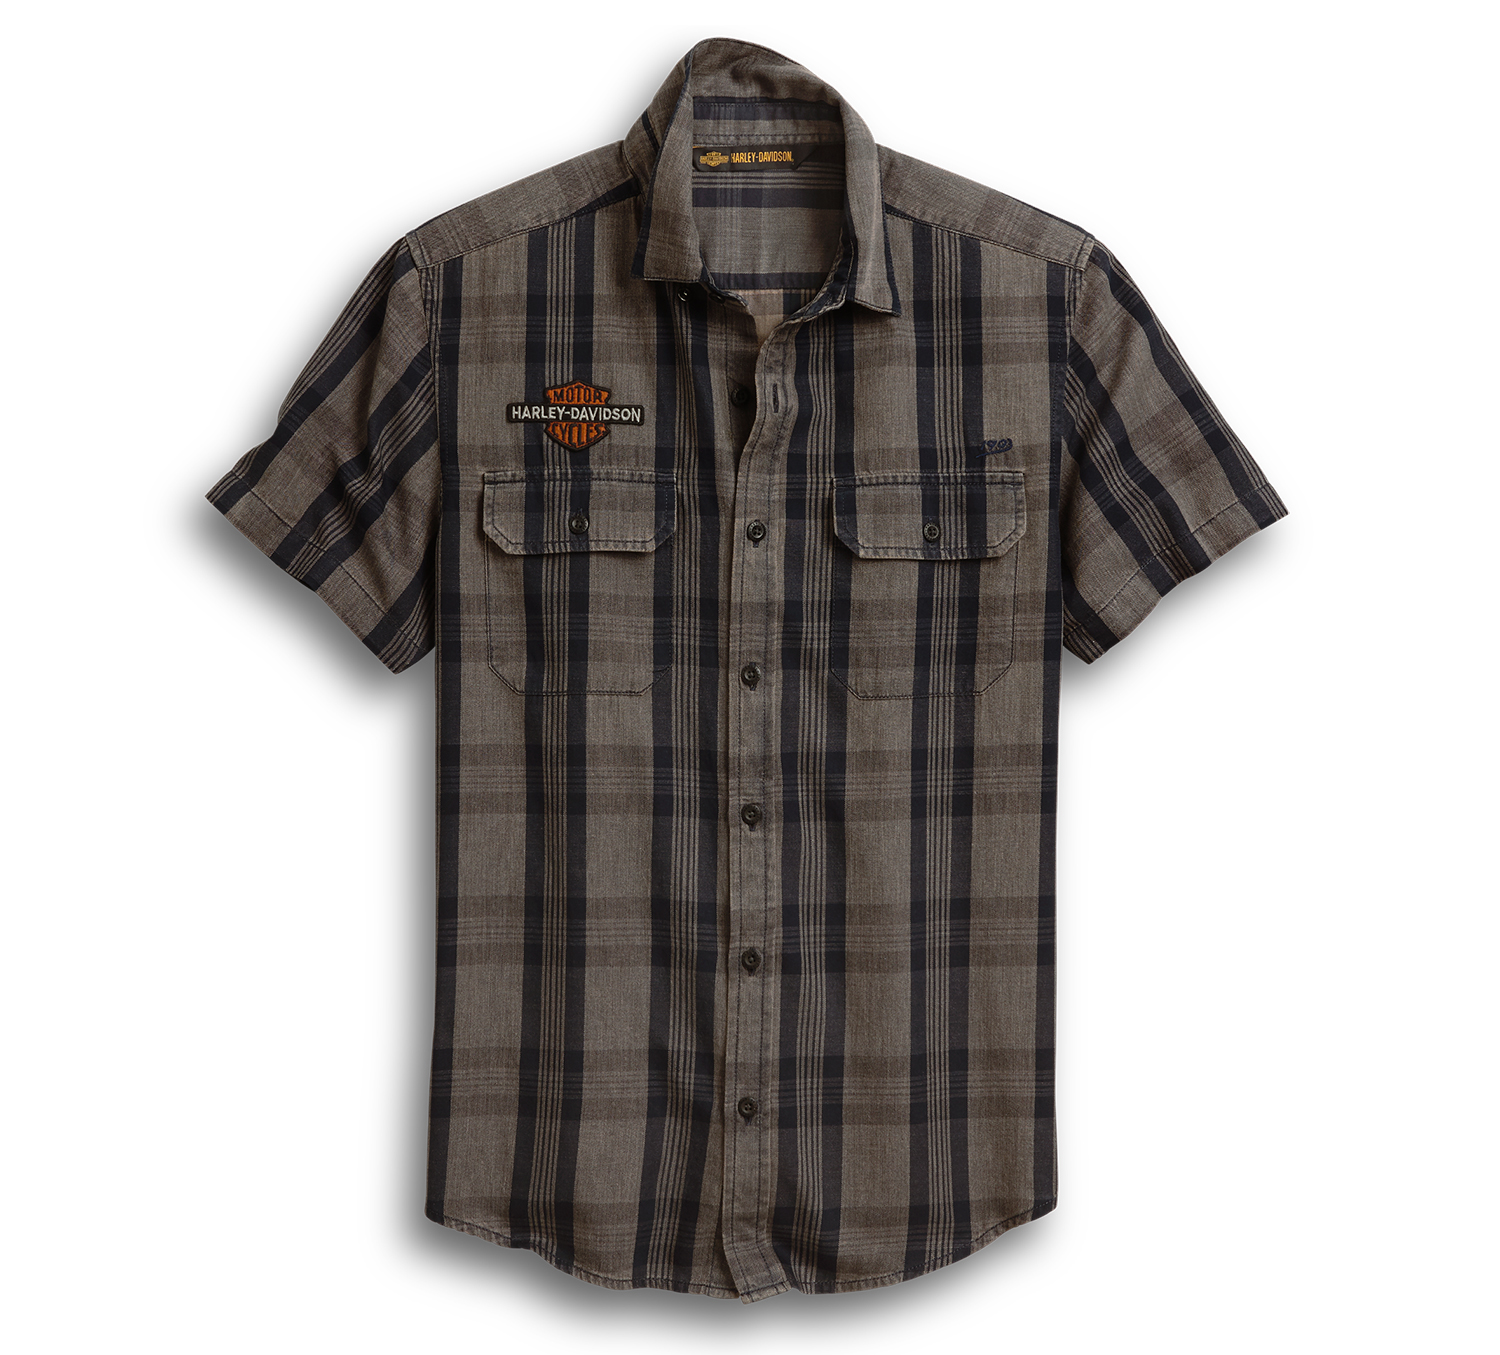 Harley-Davidson Men's Logo Patch Plaid Shirt